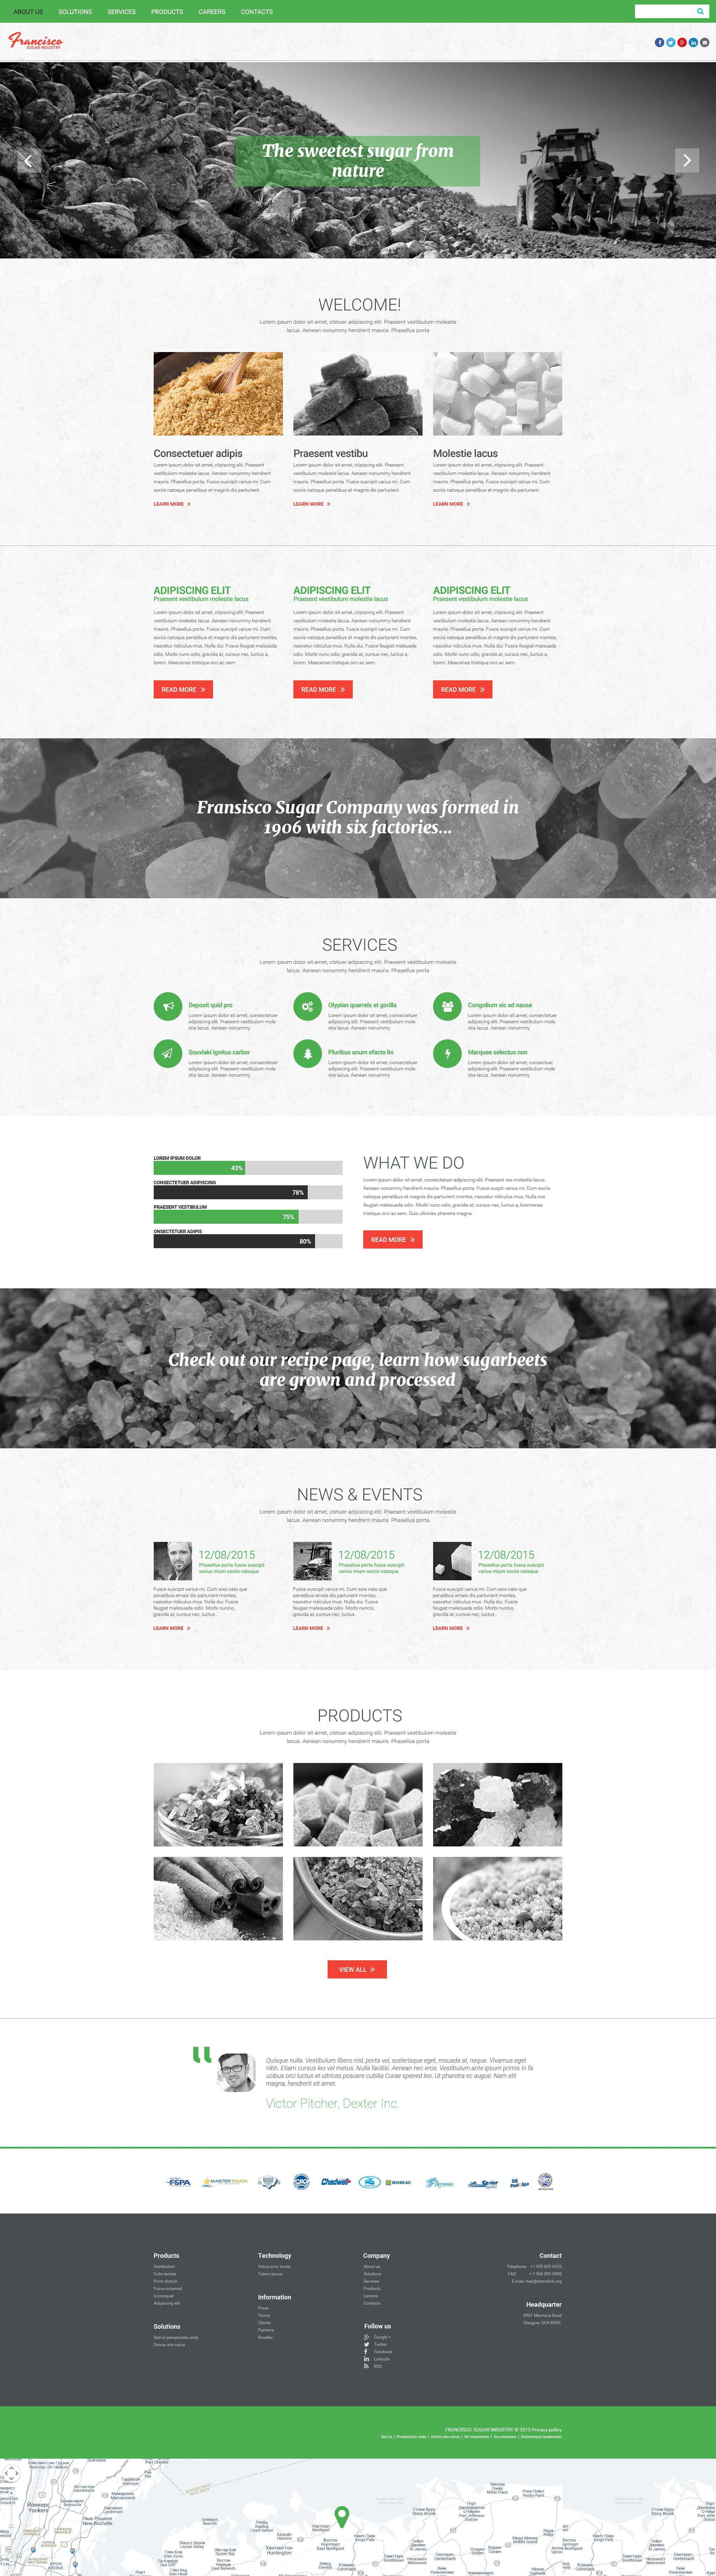 Food And Beverages Website Template